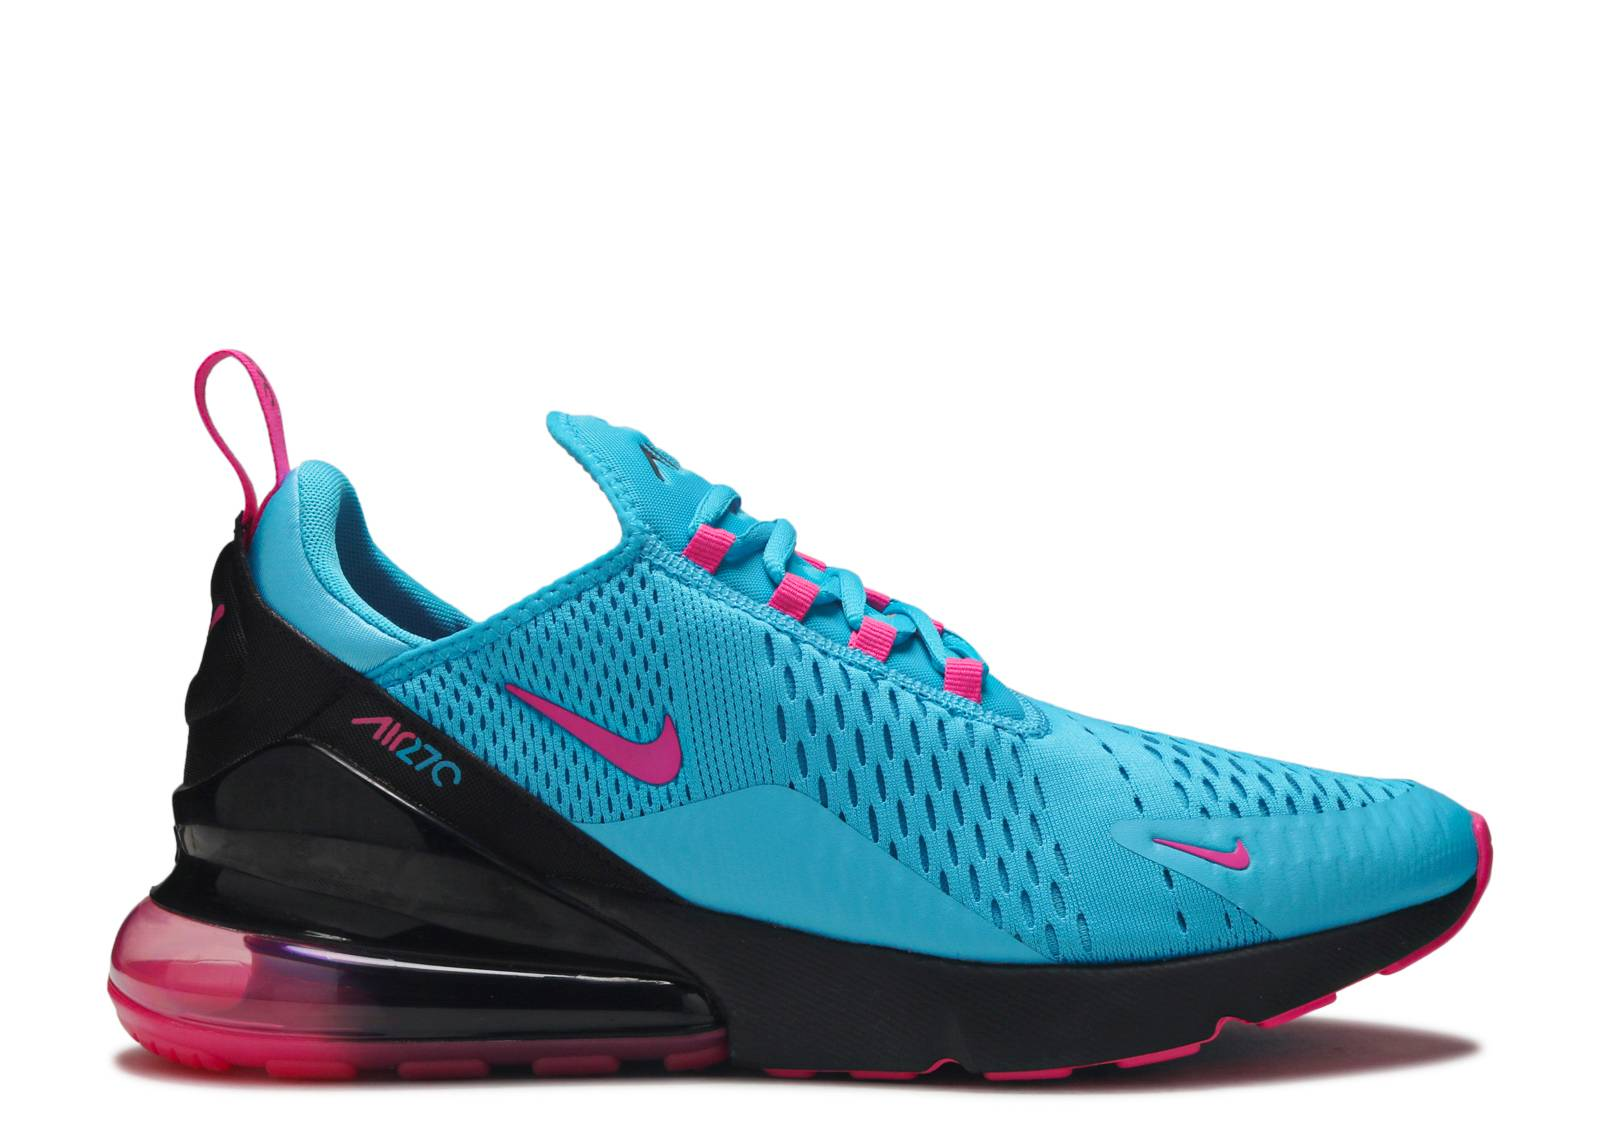 Air Max 270 South Beach